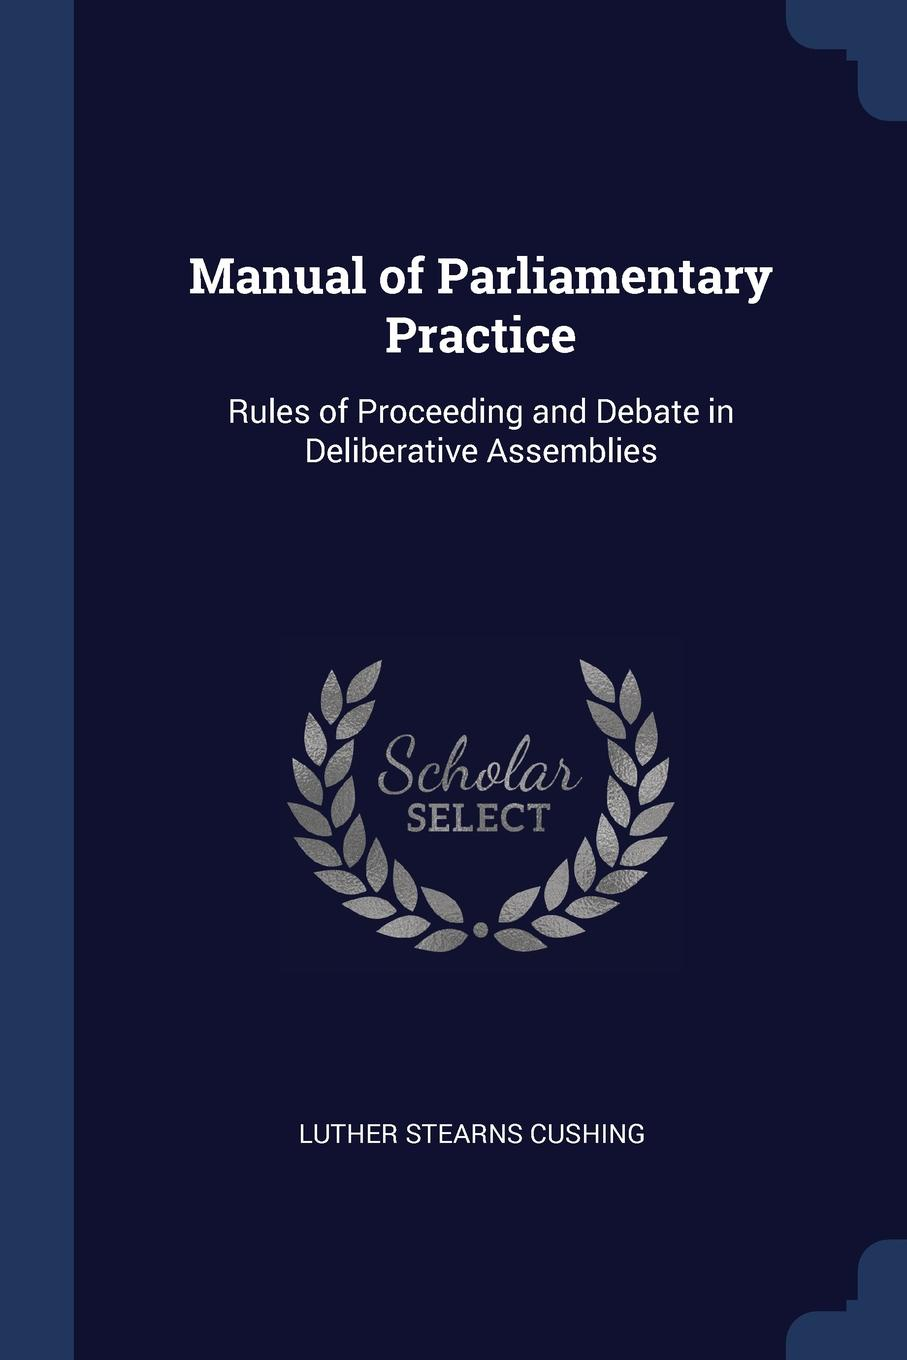 Luther Stearns Cushing Manual of Parliamentary Practice. Rules Proceeding and Debate in Deliberative Assemblies